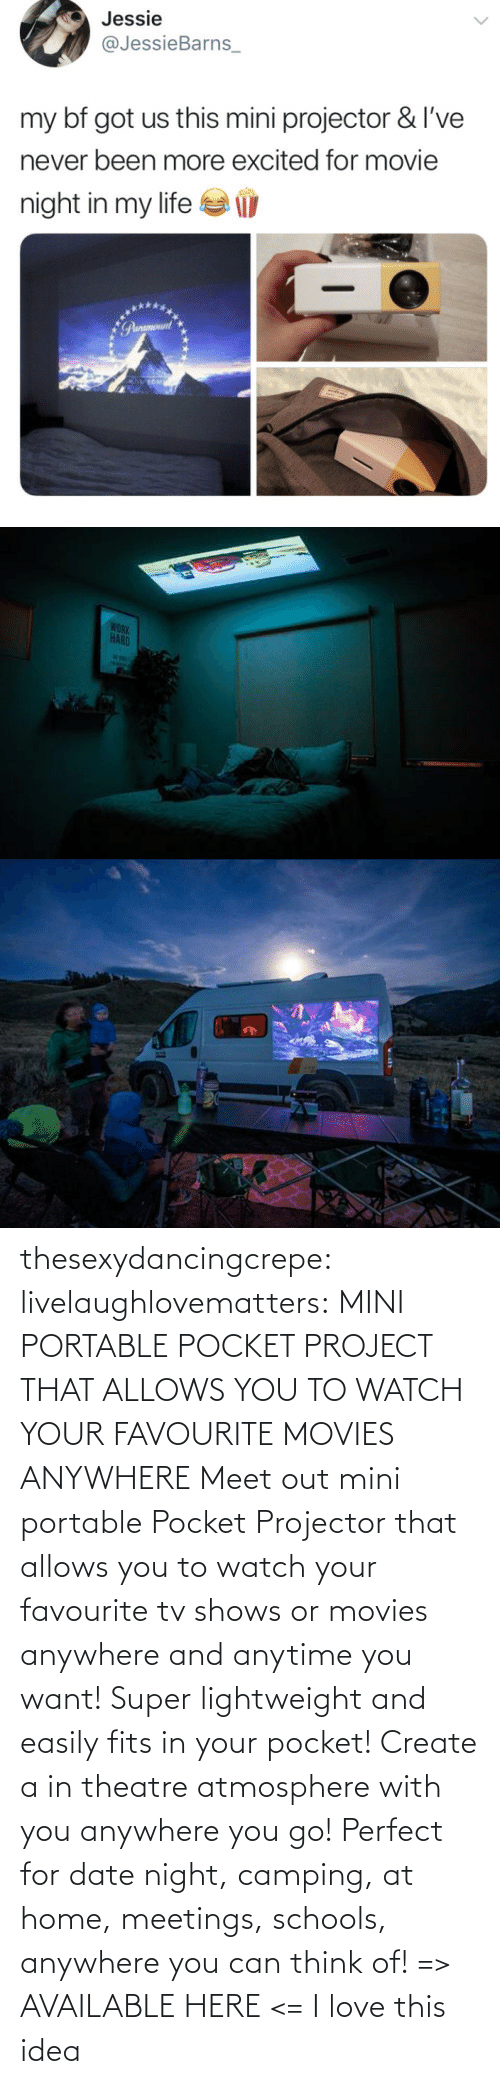 create: thesexydancingcrepe: livelaughlovematters:   MINI PORTABLE POCKET PROJECT THAT ALLOWS YOU TO WATCH YOUR FAVOURITE MOVIES ANYWHERE Meet out mini portable Pocket Projector that allows you to watch your favourite tv shows or movies anywhere and anytime you want! Super lightweight and easily fits in your pocket! Create a in theatre atmosphere with you anywhere you go! Perfect for date night, camping, at home, meetings, schools, anywhere you can think of! => AVAILABLE HERE <=    I love this idea